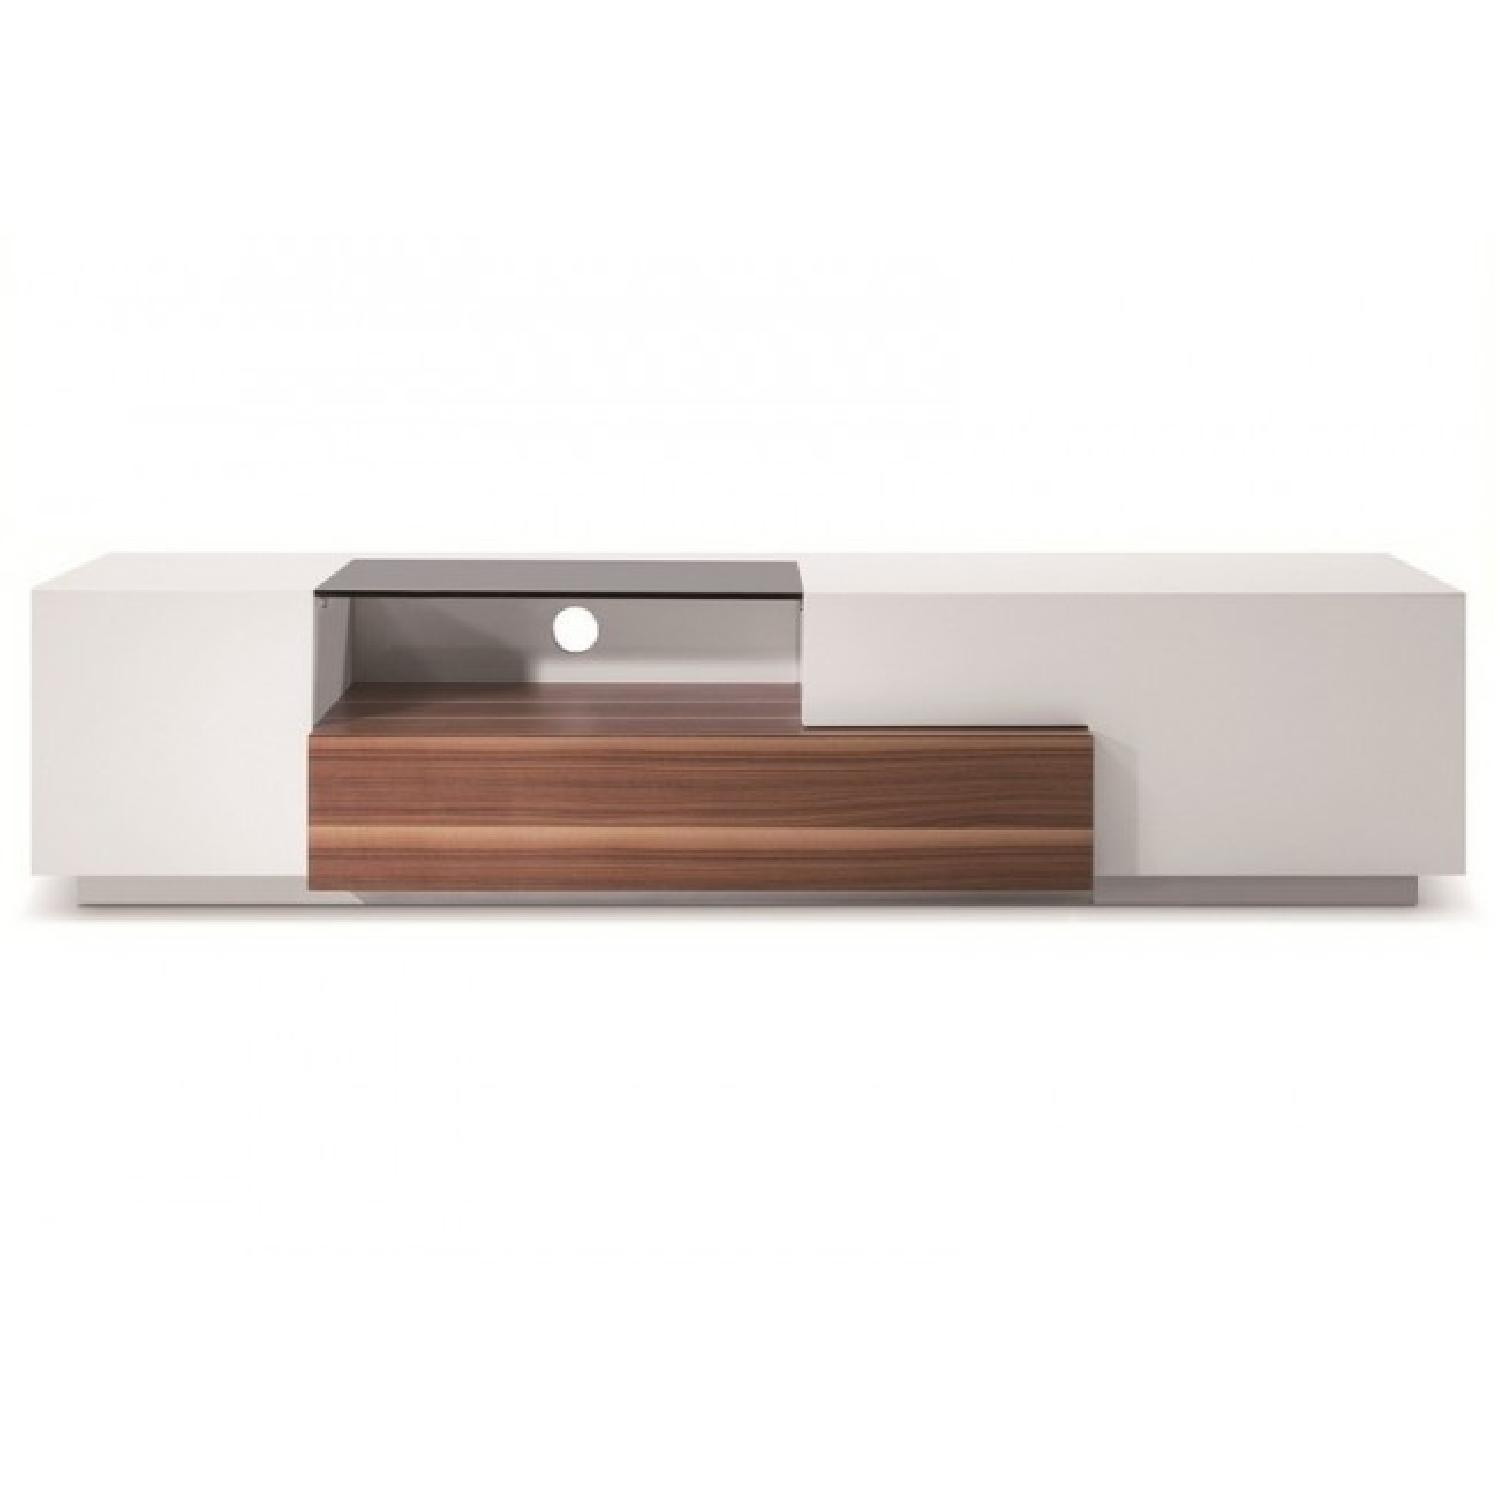 Walnut w/ White High Gloss Contemporary TV Stand